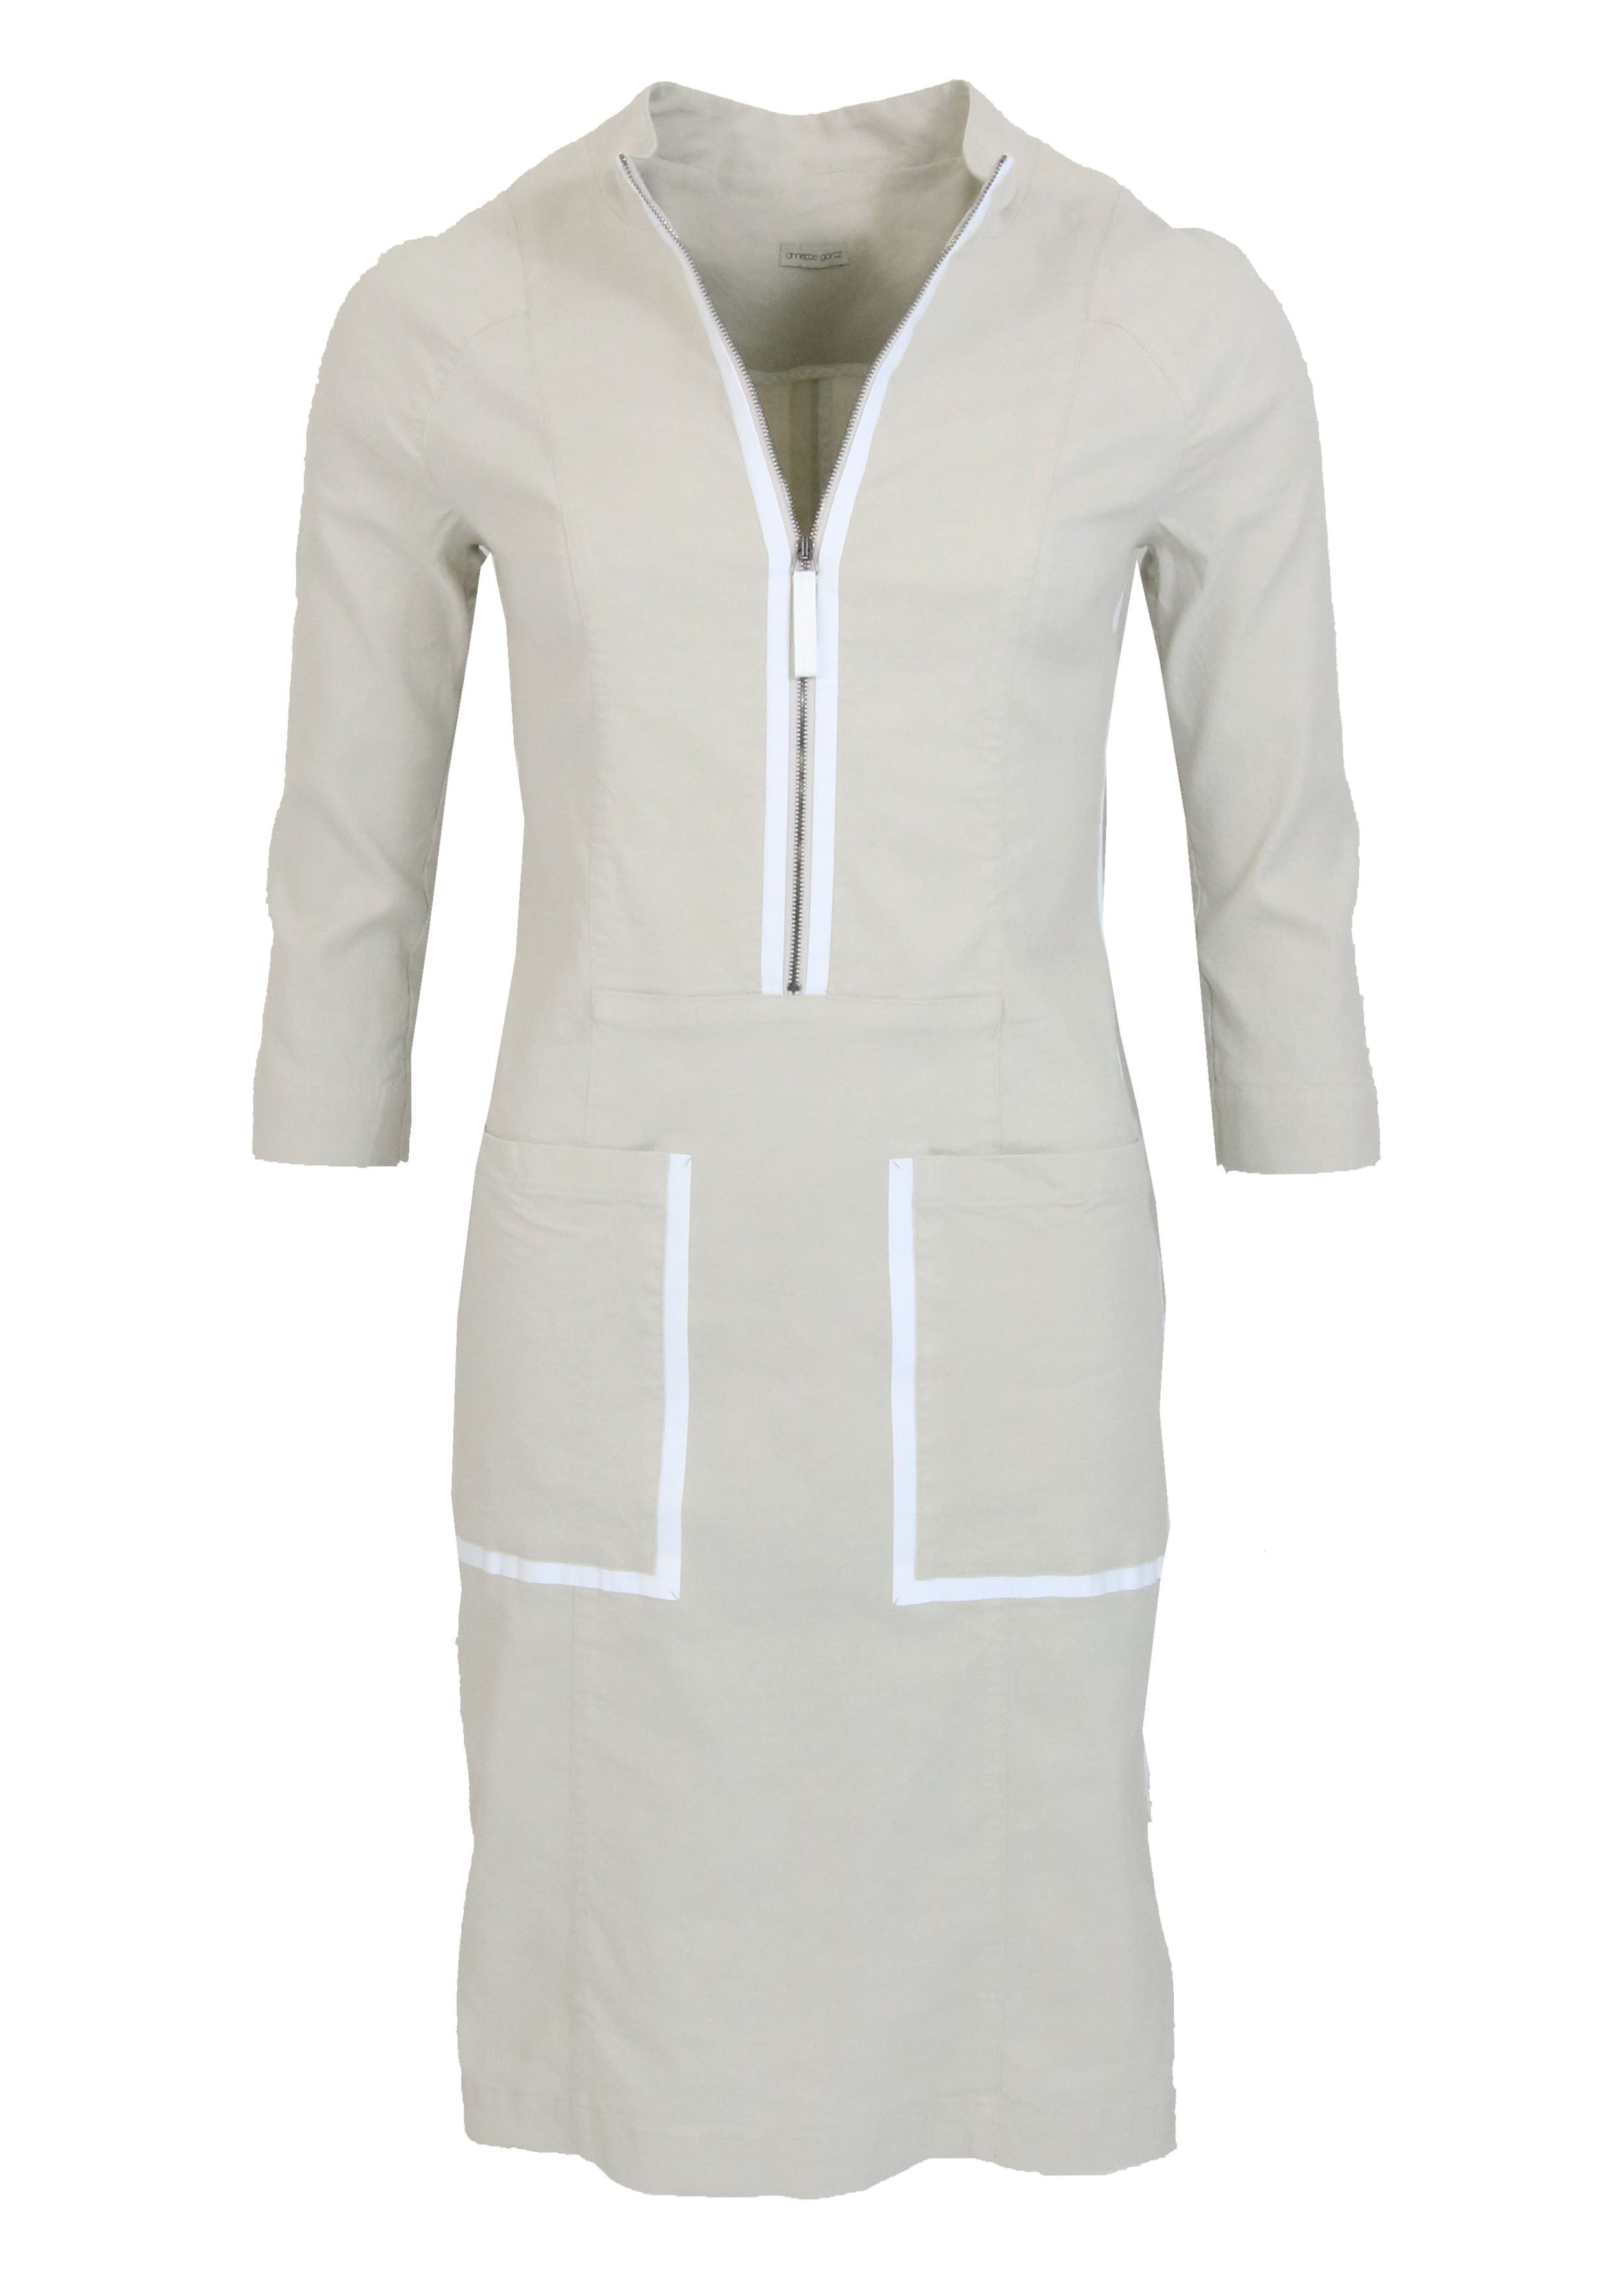 Annette Gortz Stacy Dress at Jophiel